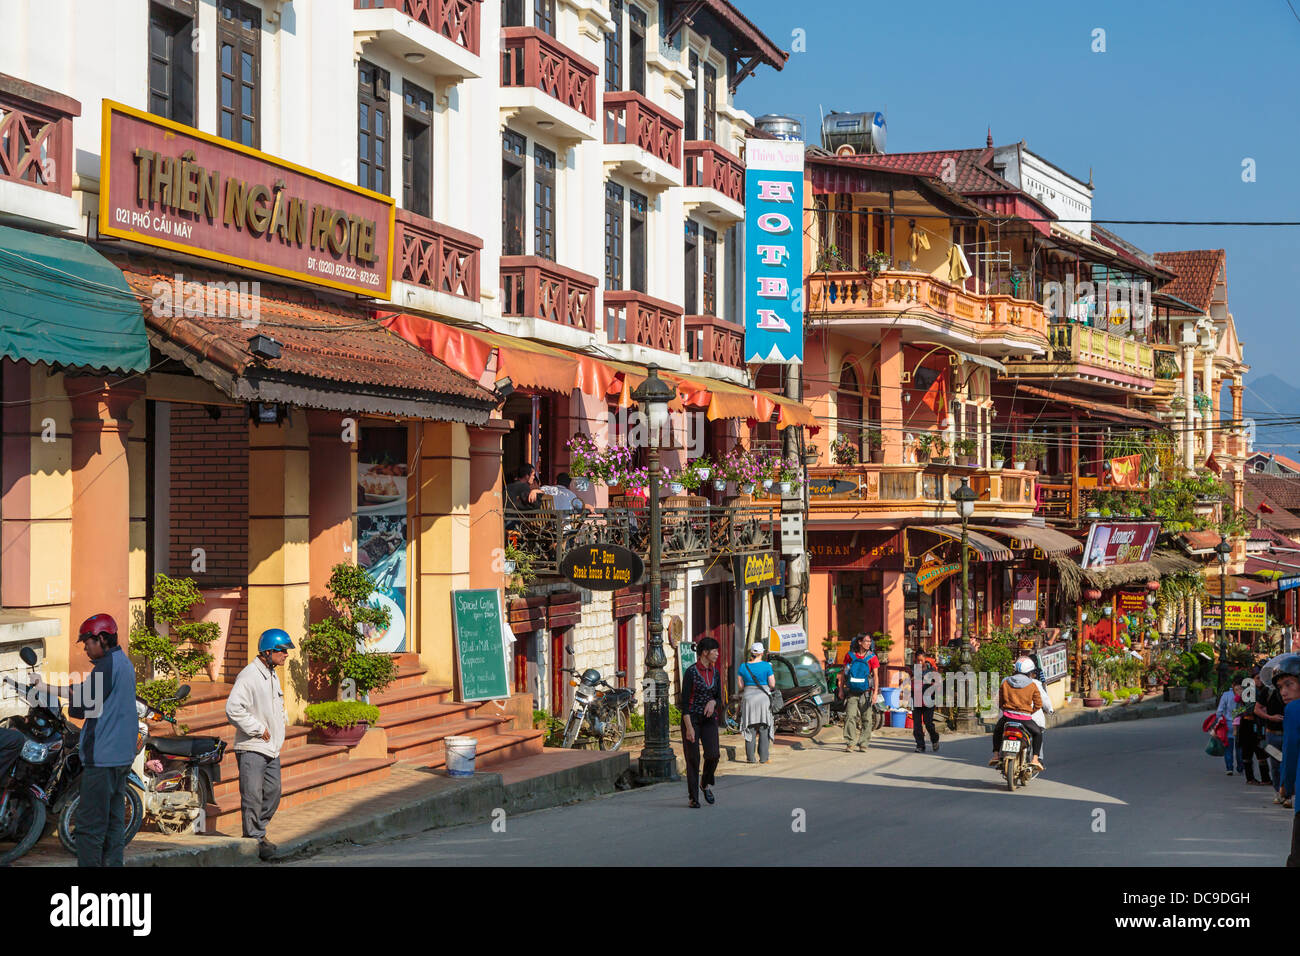 Building architecture in the market town of Sapa, Vietnam, Asia. - Stock Image